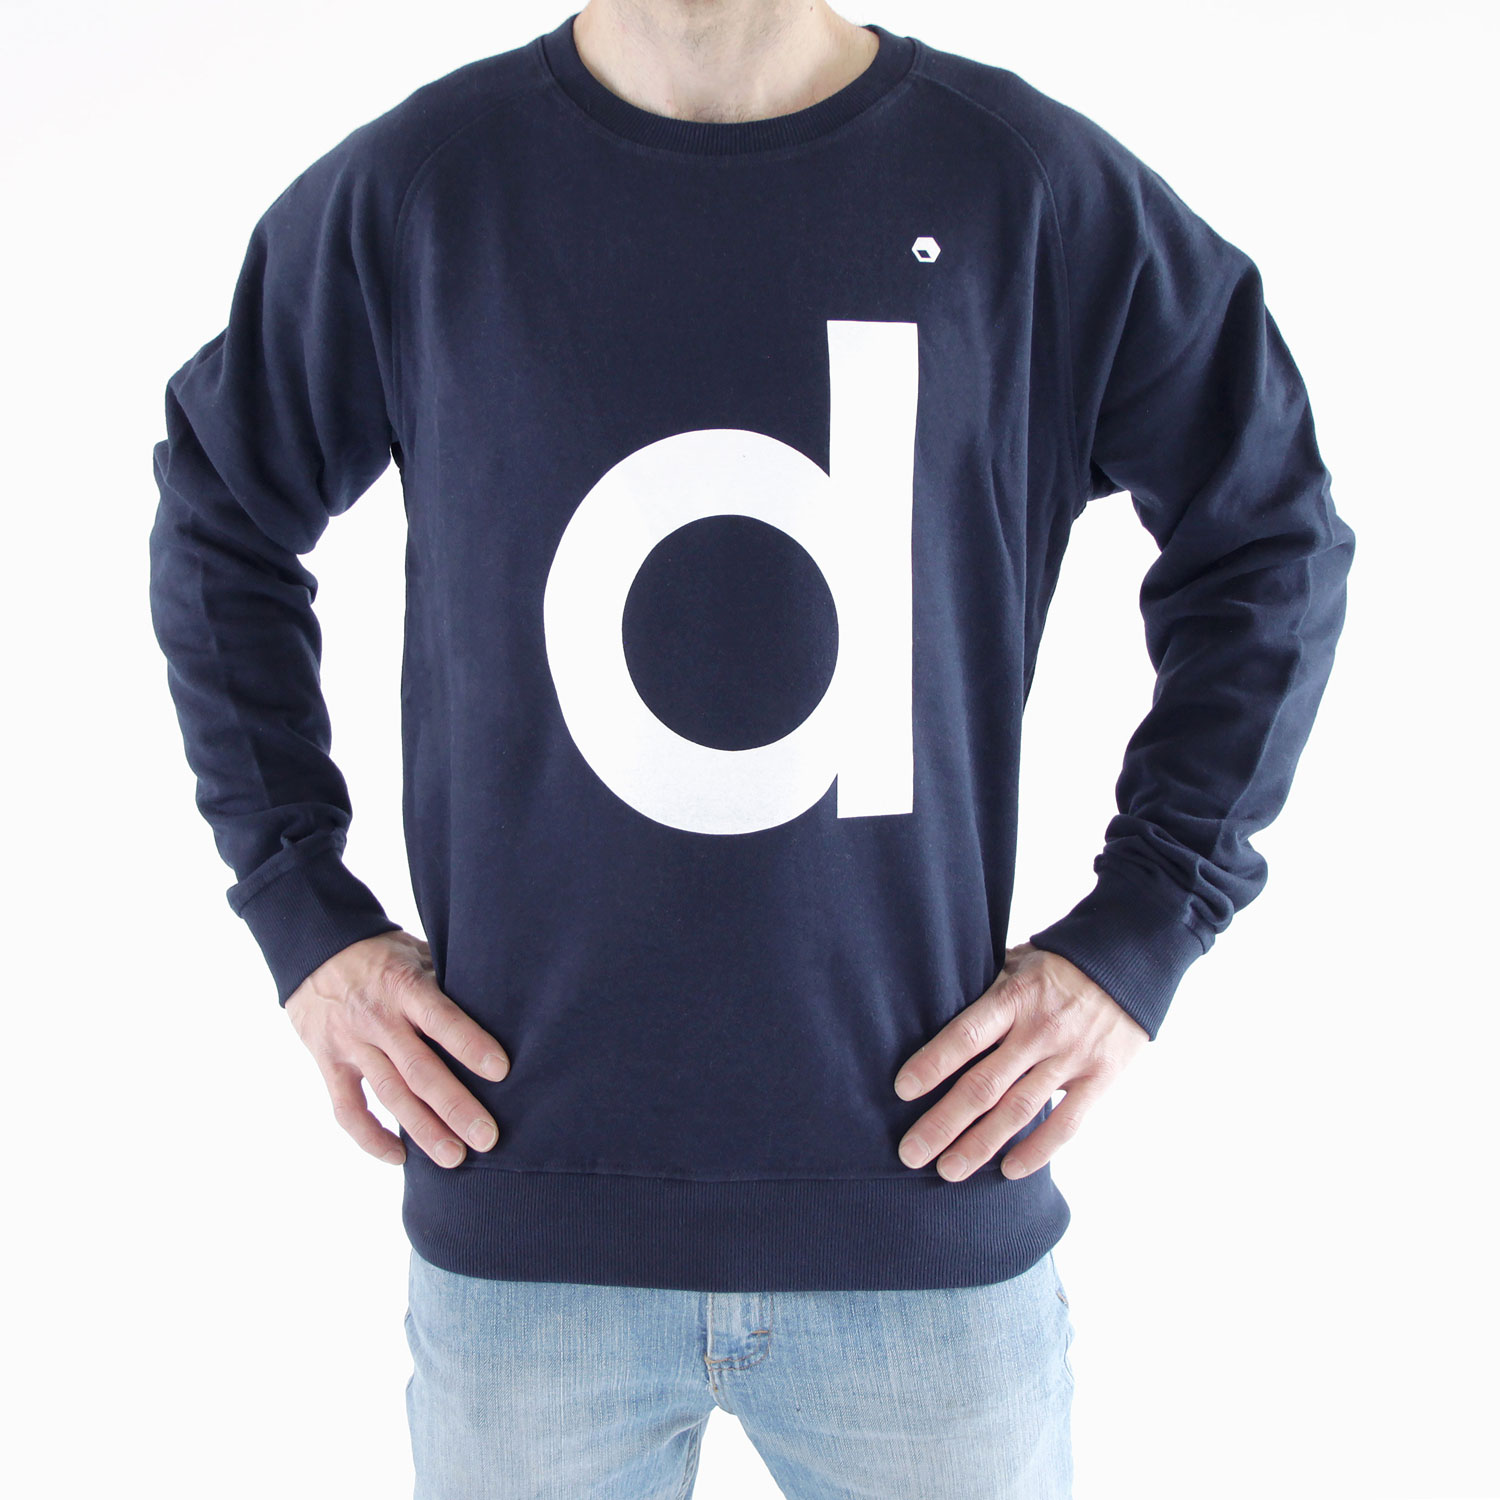 Flathold-apparel-sweat-d-navy